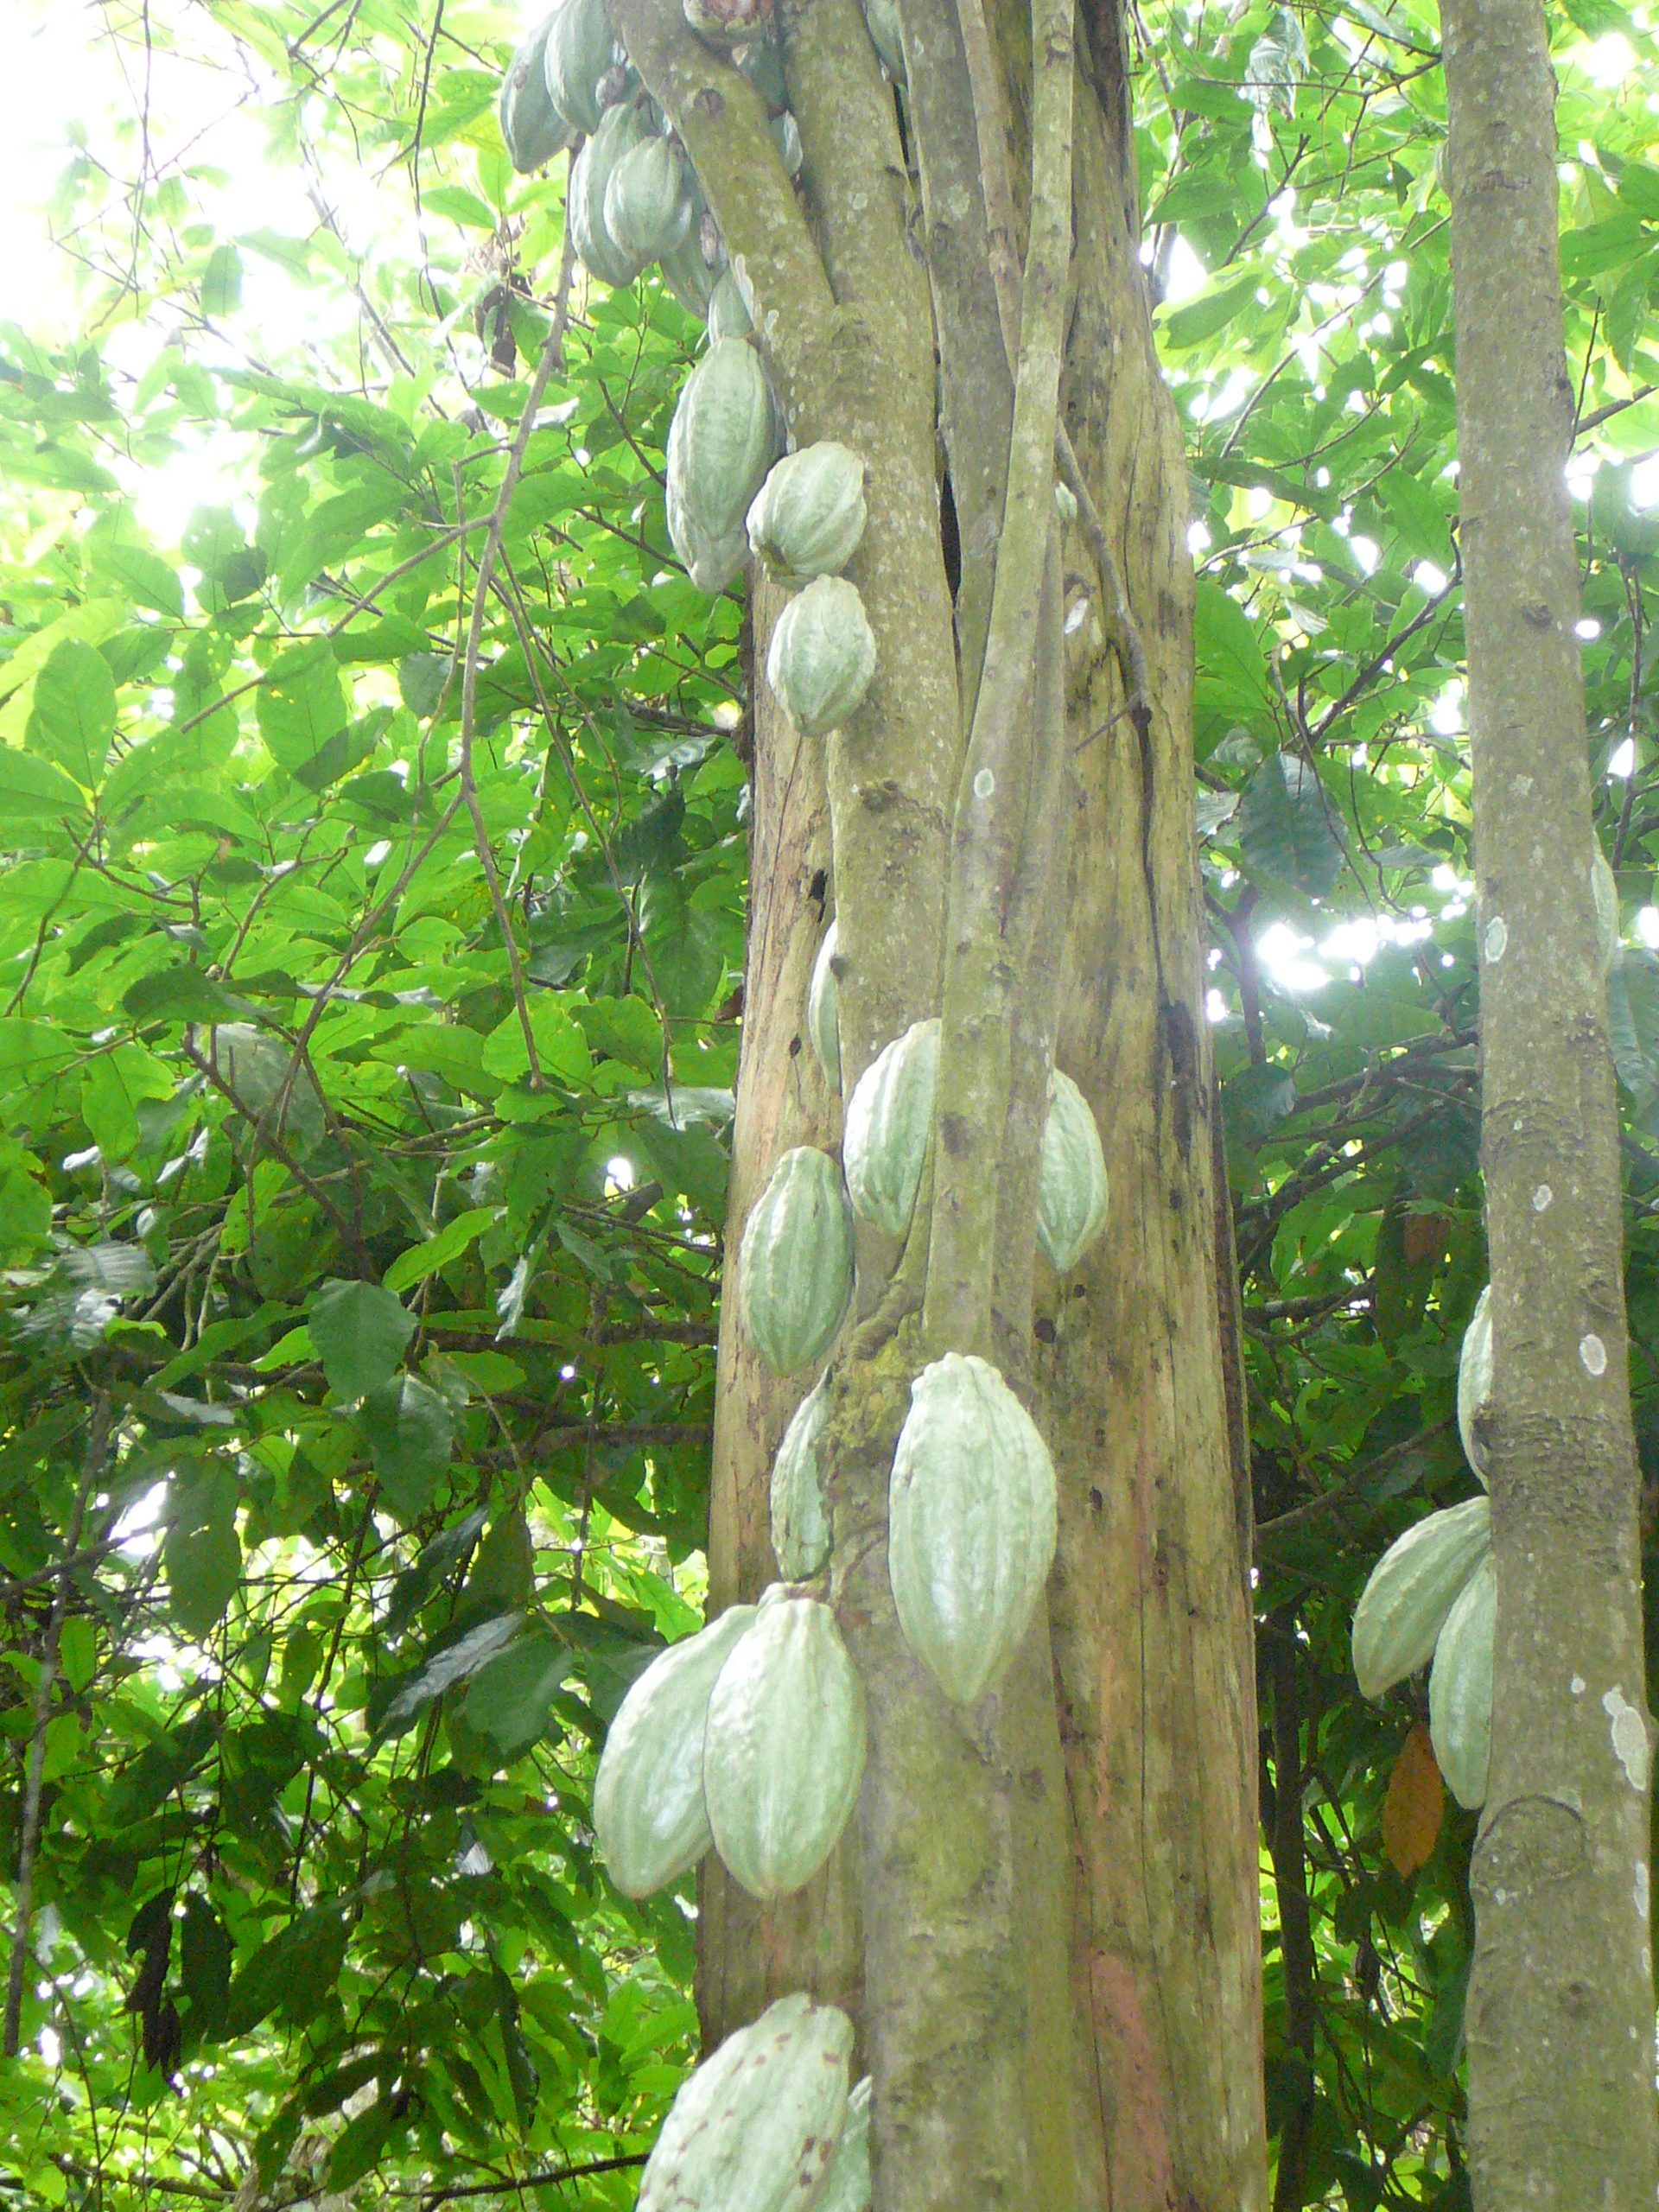 A cocoa tree in Ghana with green cocoa pods. The sun is shining through the leaves.